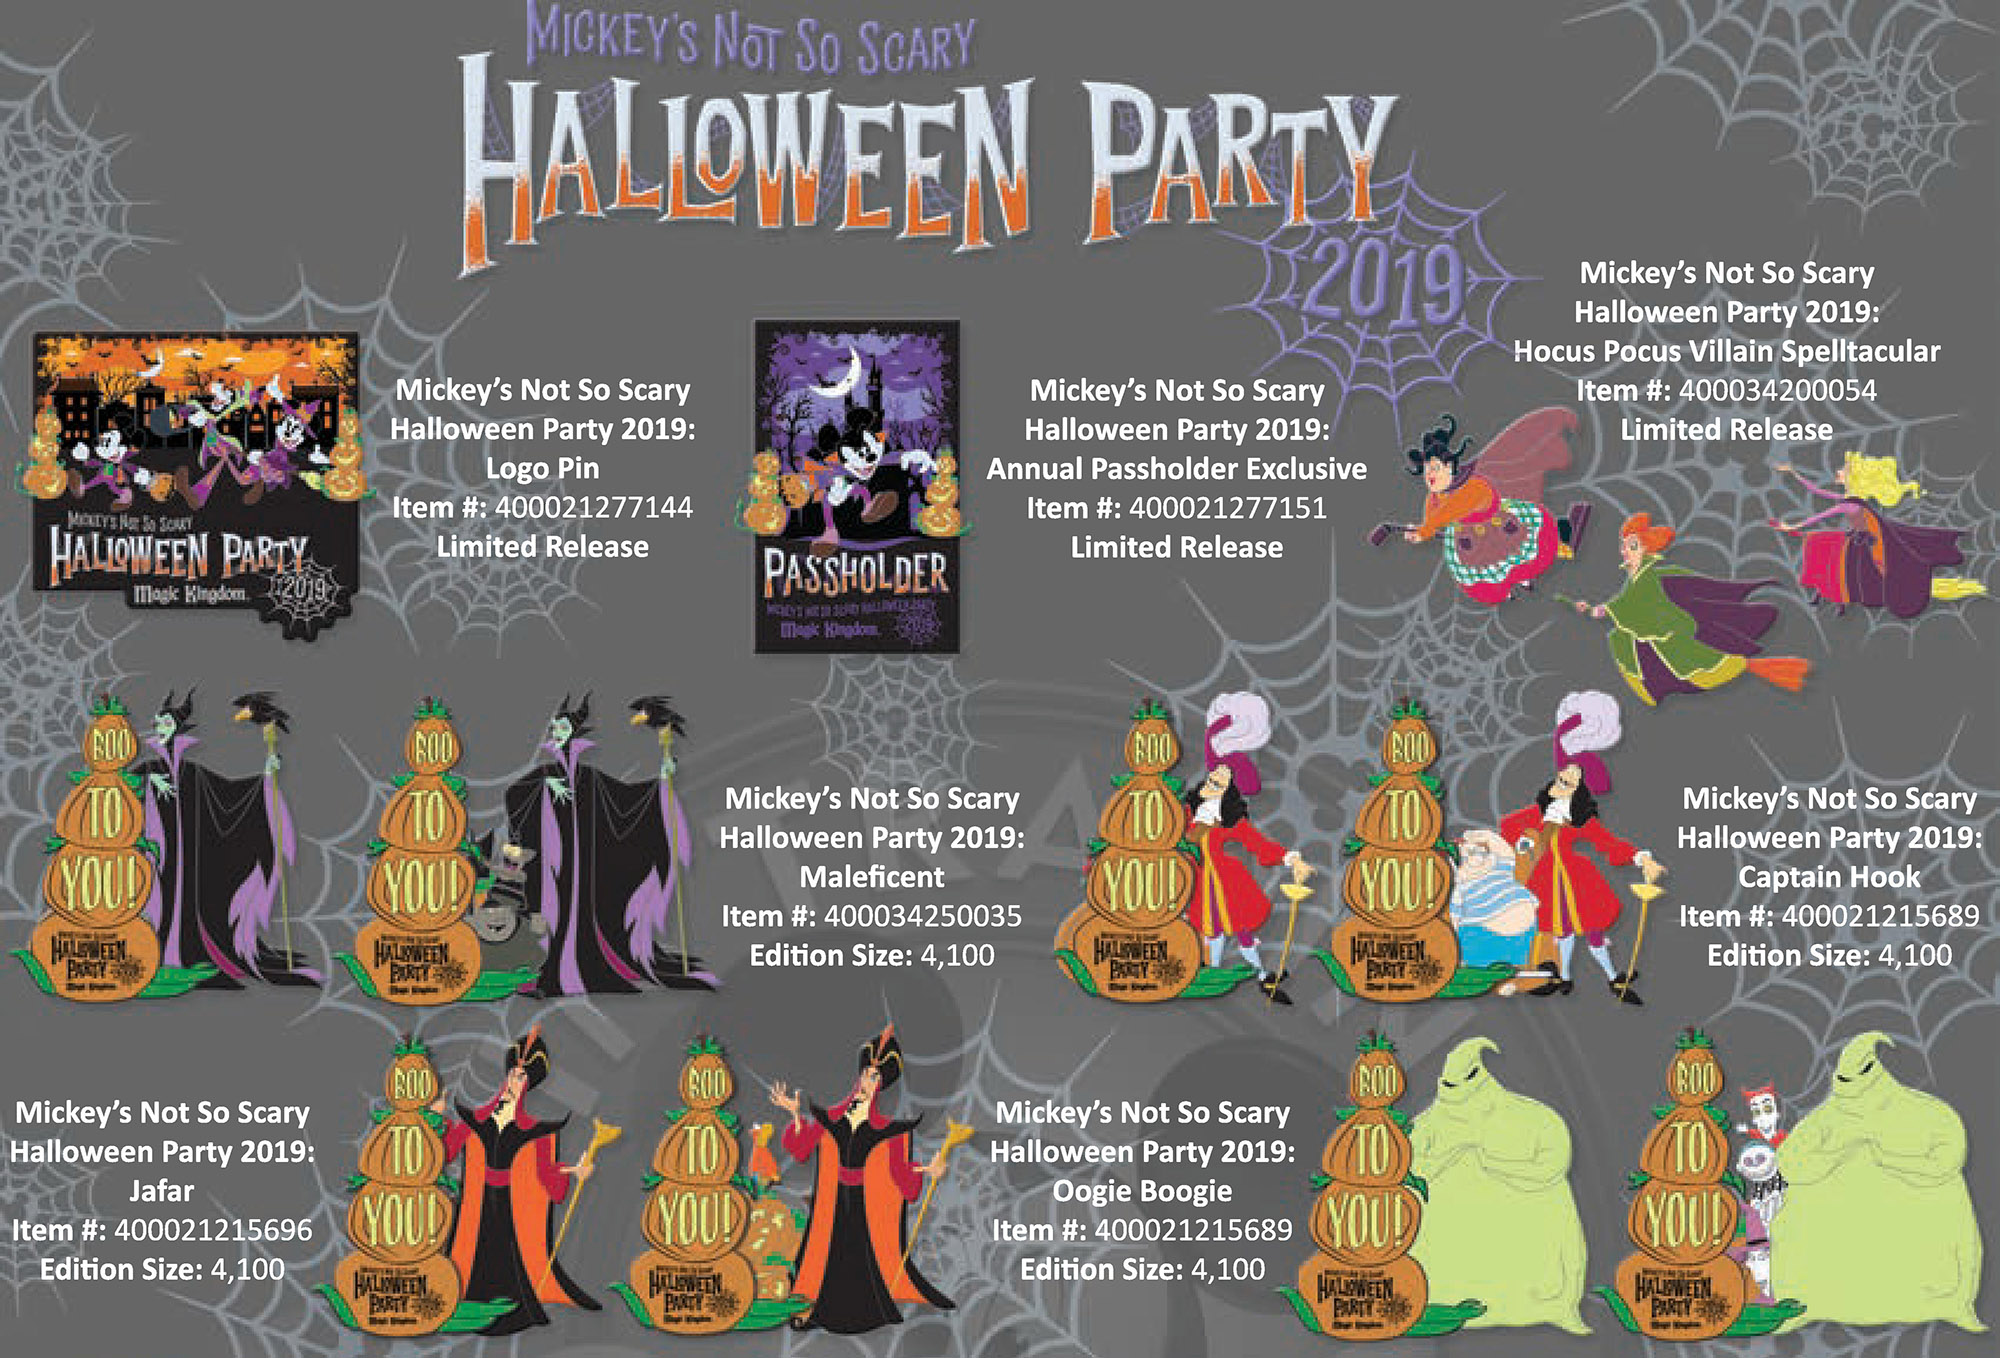 Mickeys Not So Scary Halloween Party 2020 Pins 2019 Mickey's Not So Scary Halloween Party Exclusive Pin Releases